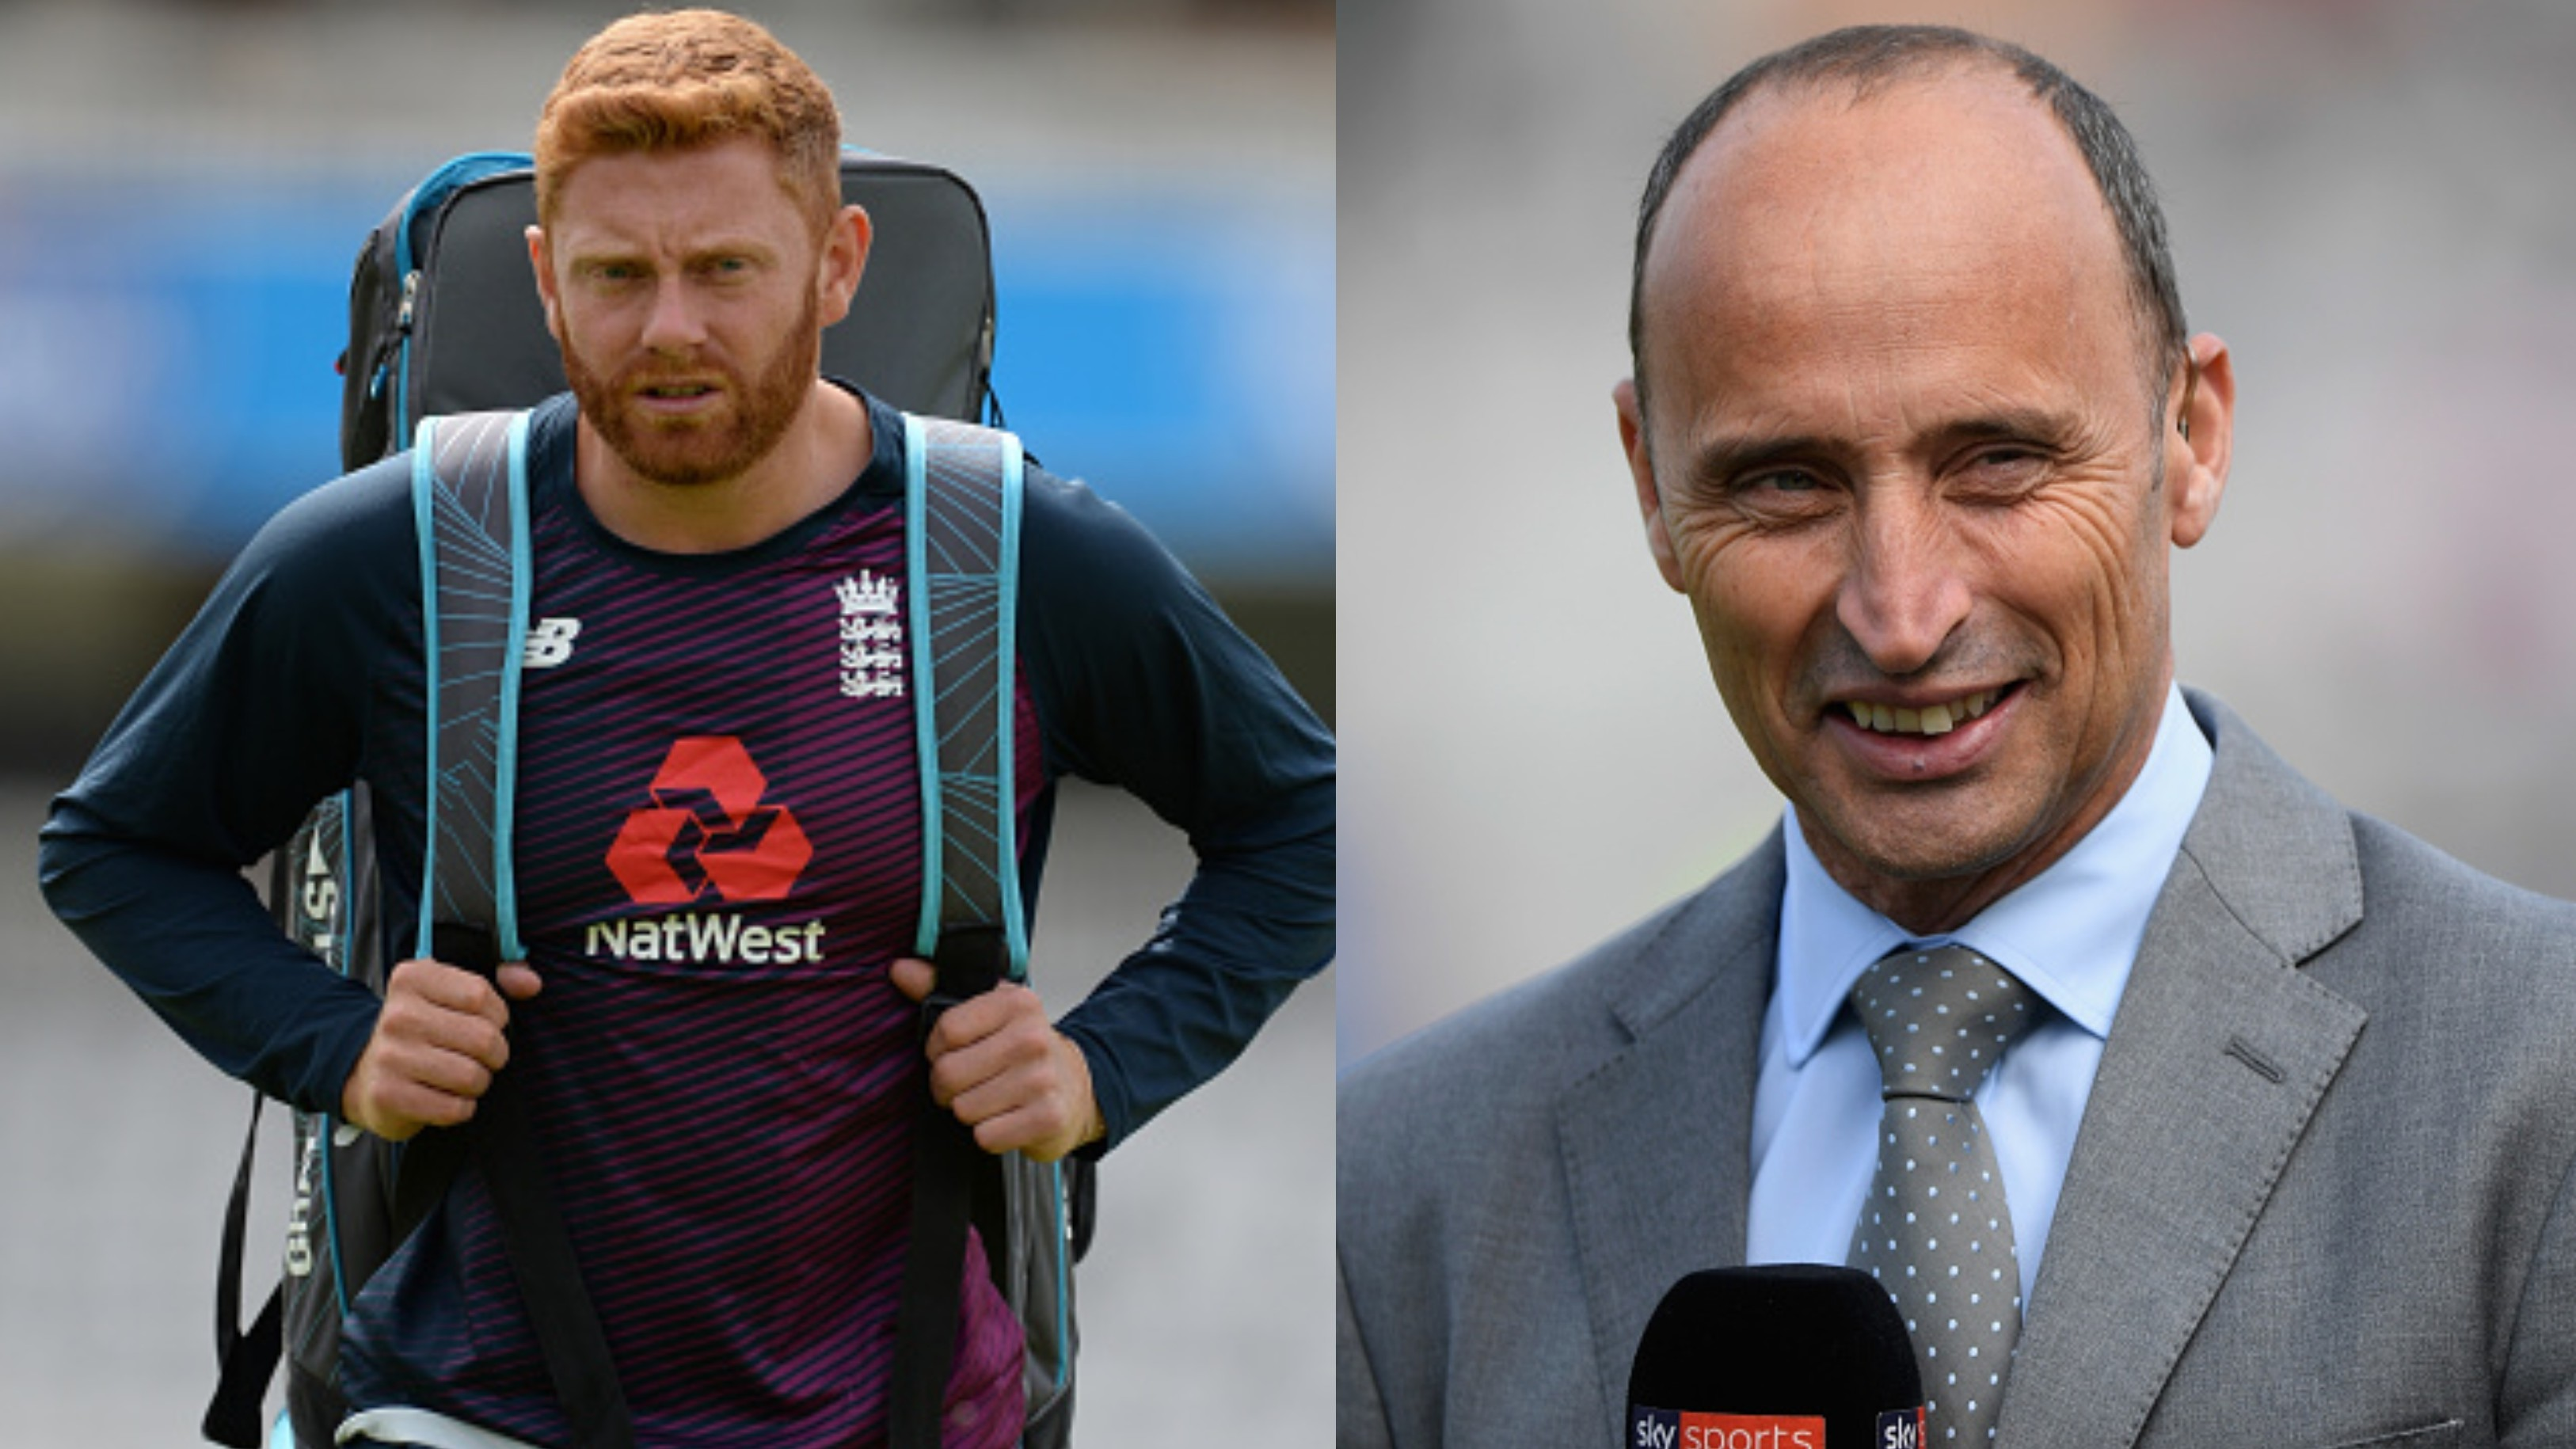 Ashes 2019: Struggling Jonny Bairstow gets backing from Nasser Hussain ahead of Lord's Test